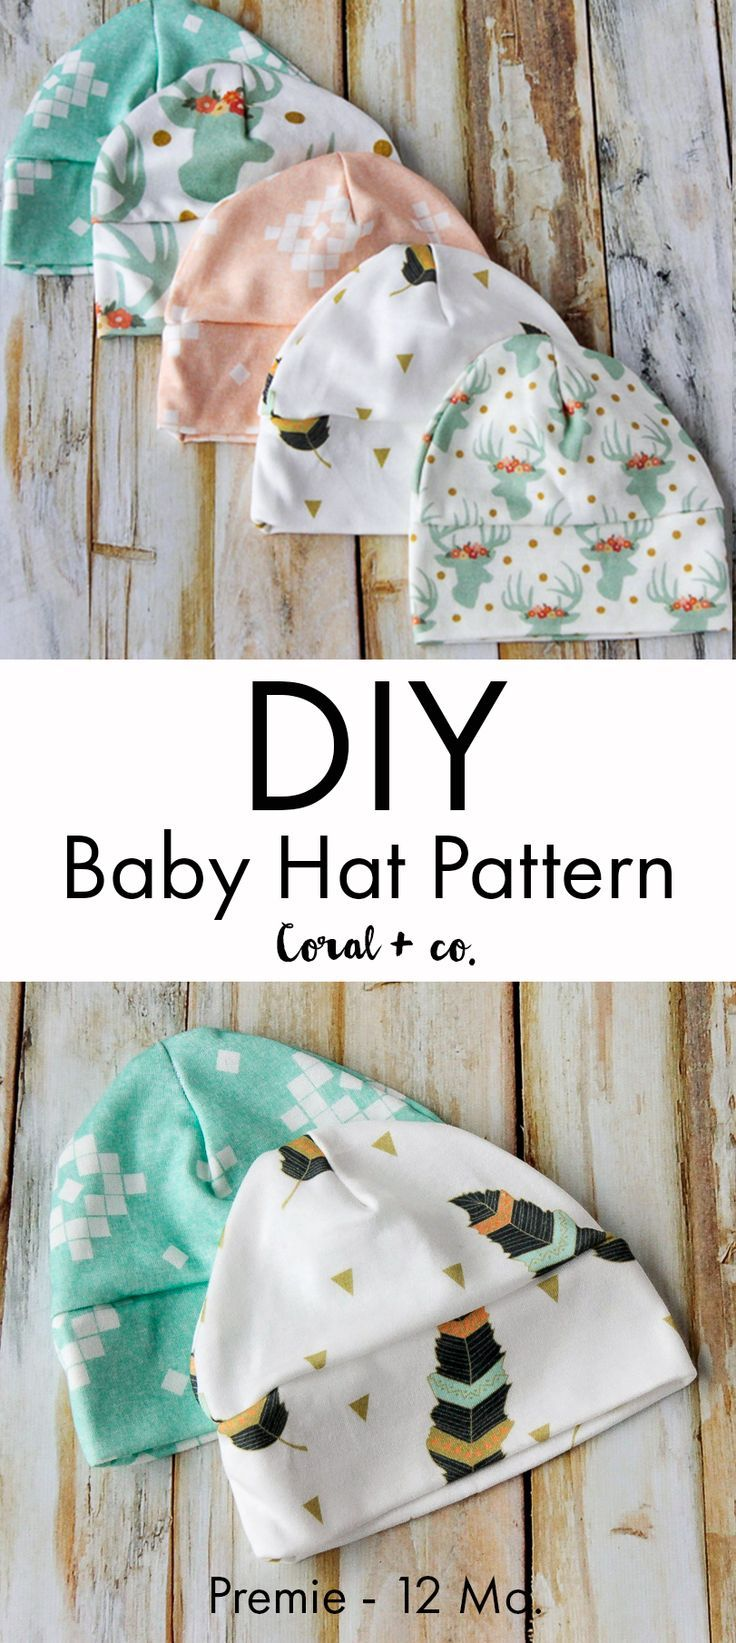 Diferentes diseños puedes hacer para tu bebé con este tutorial. #gorro #costura #bebe Find more cute kids and baby sewing projects at http://www.sewinlove.com.au/category/kids/